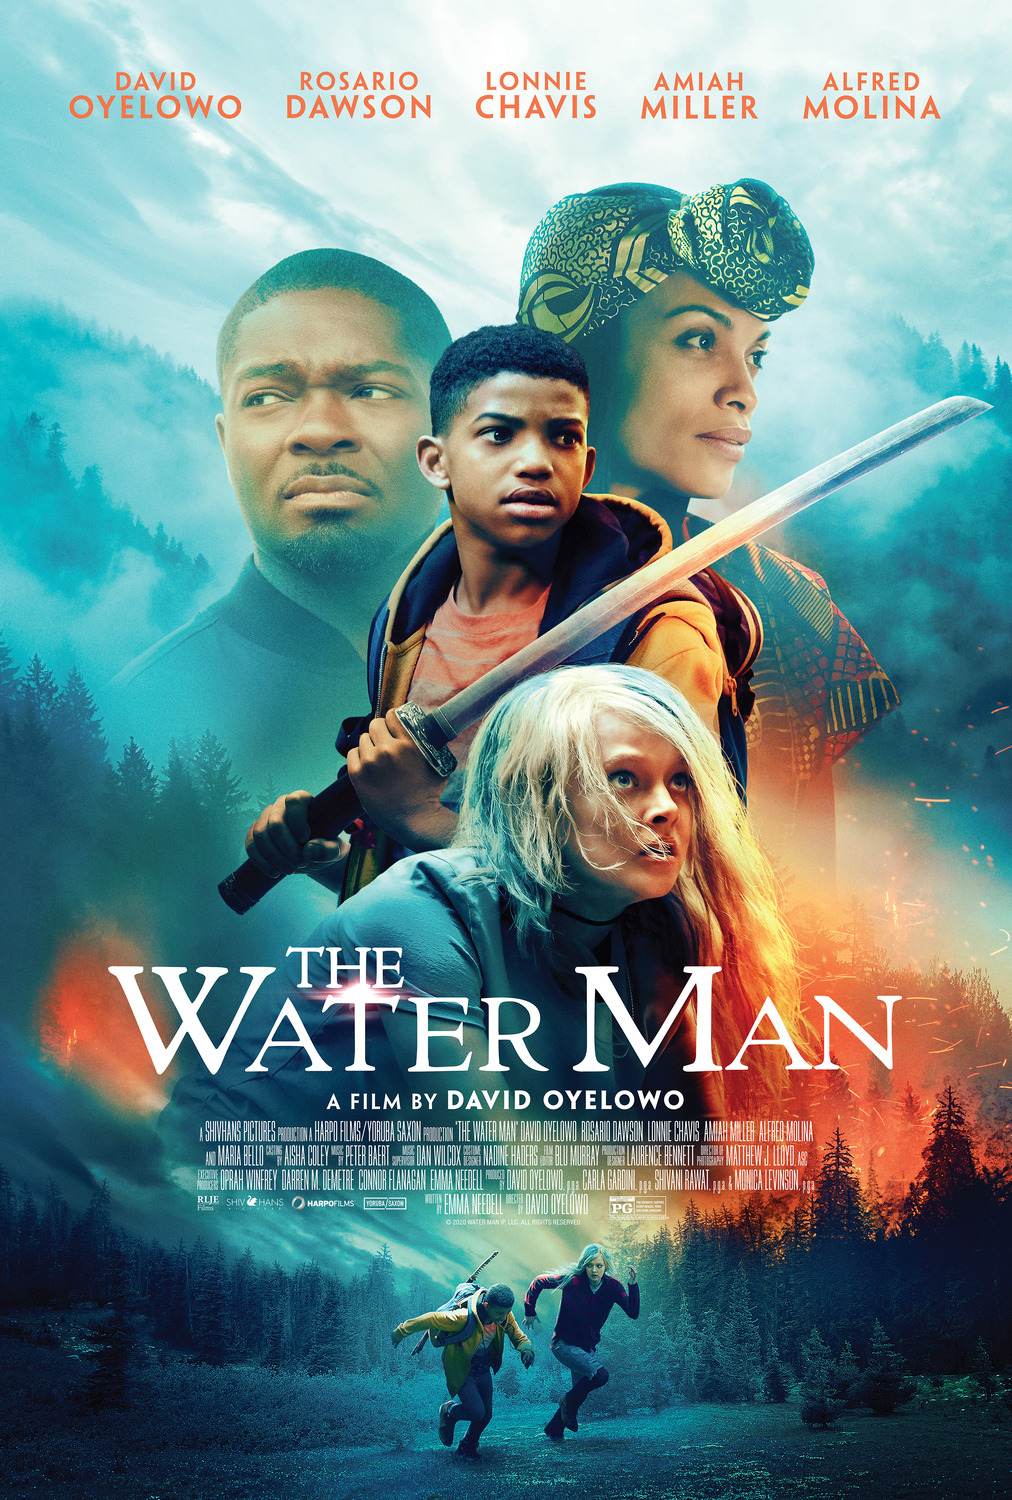 Trailer for David Oyelowo's Directorial Debut The Water Man